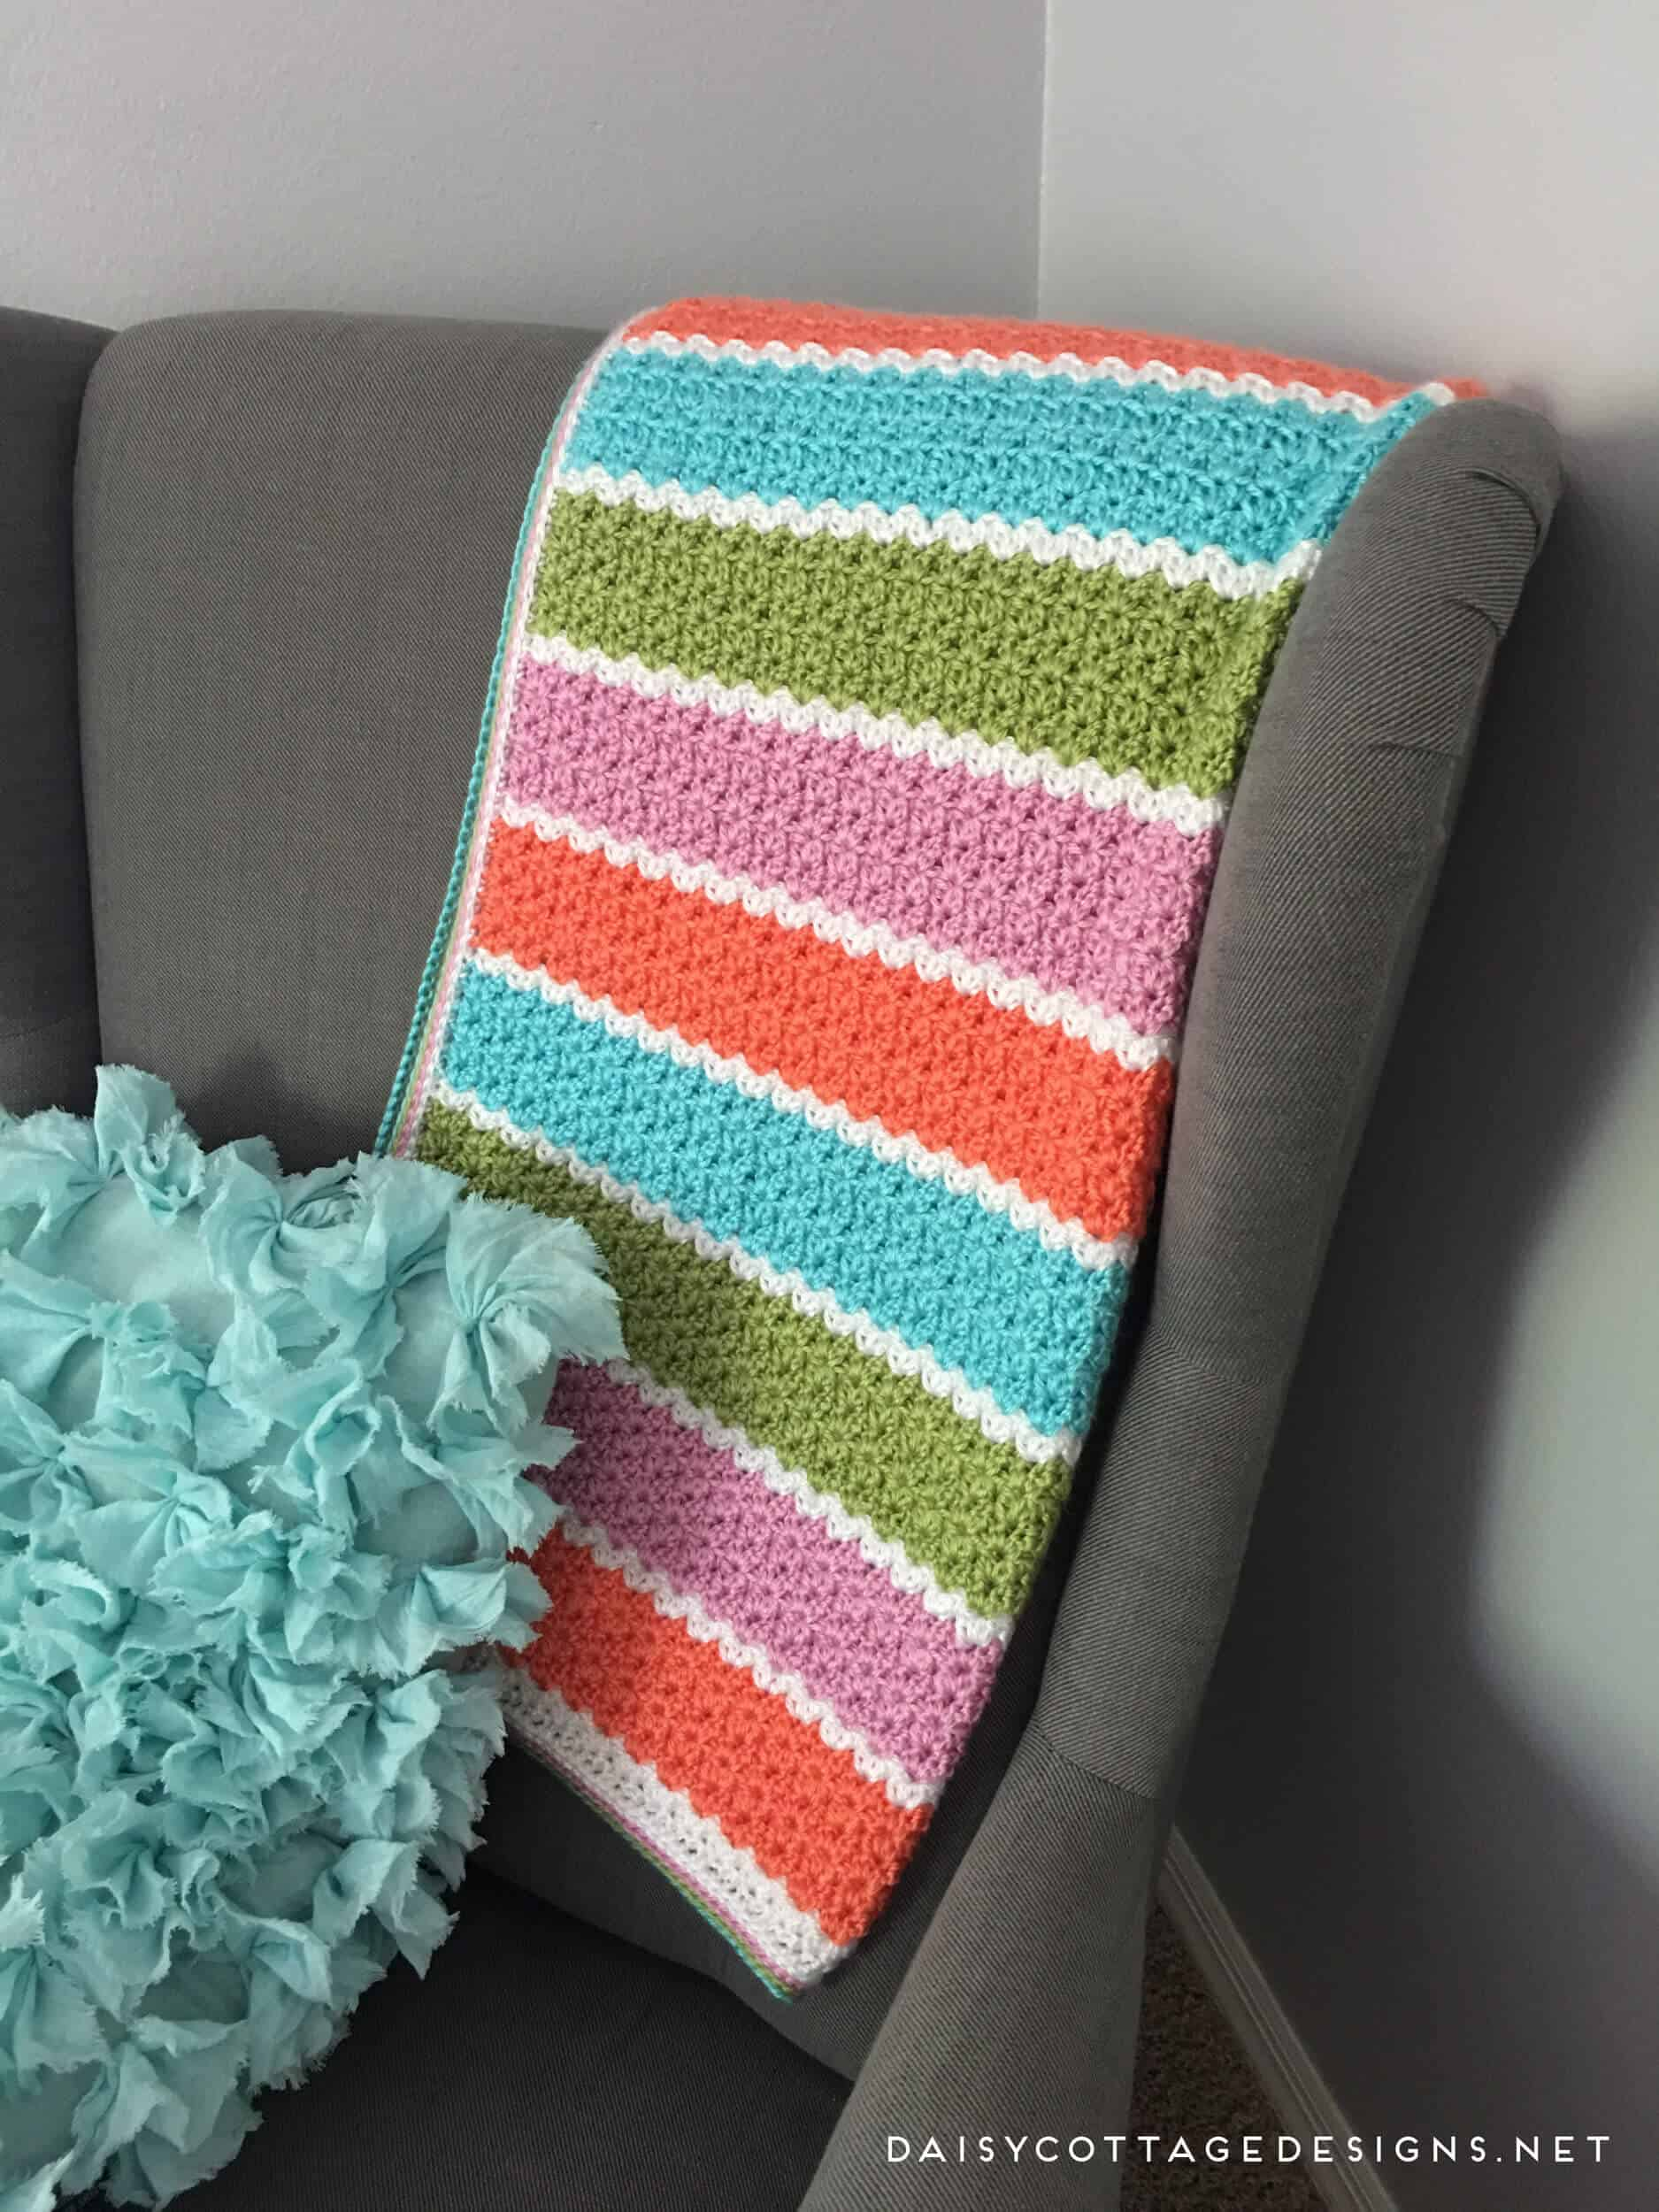 If you're looking for a free blanket crochet pattern that works up quickly, this easy v-stitch blanket from Daisy Cottage Designs is the way to go! | free crochet pattern, easy crochet blanket pattern, striped baby blanket pattern